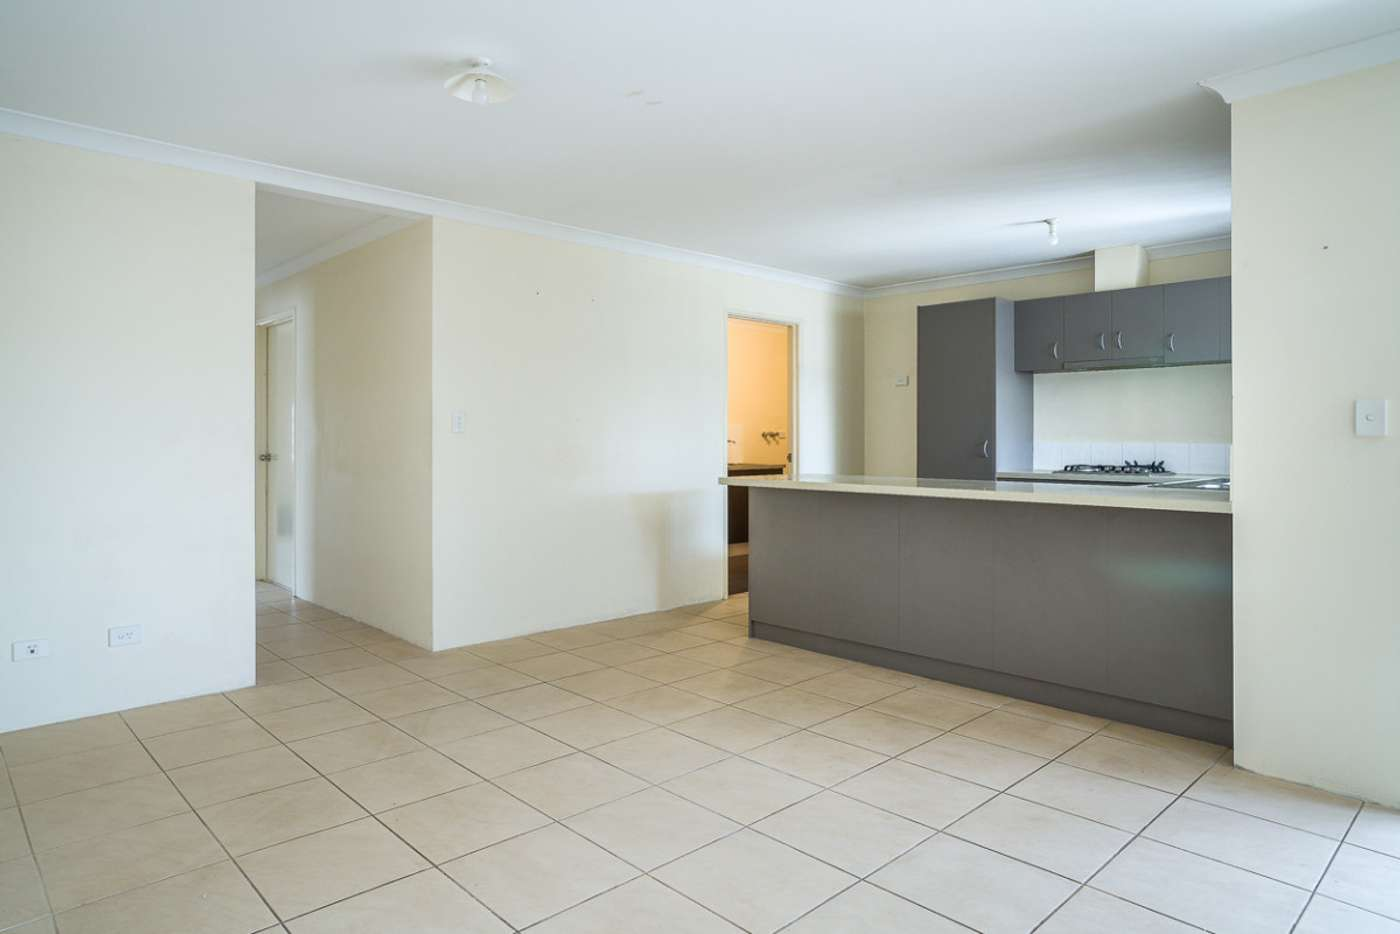 Sixth view of Homely house listing, 3/275 Boardman Road, Canning Vale WA 6155